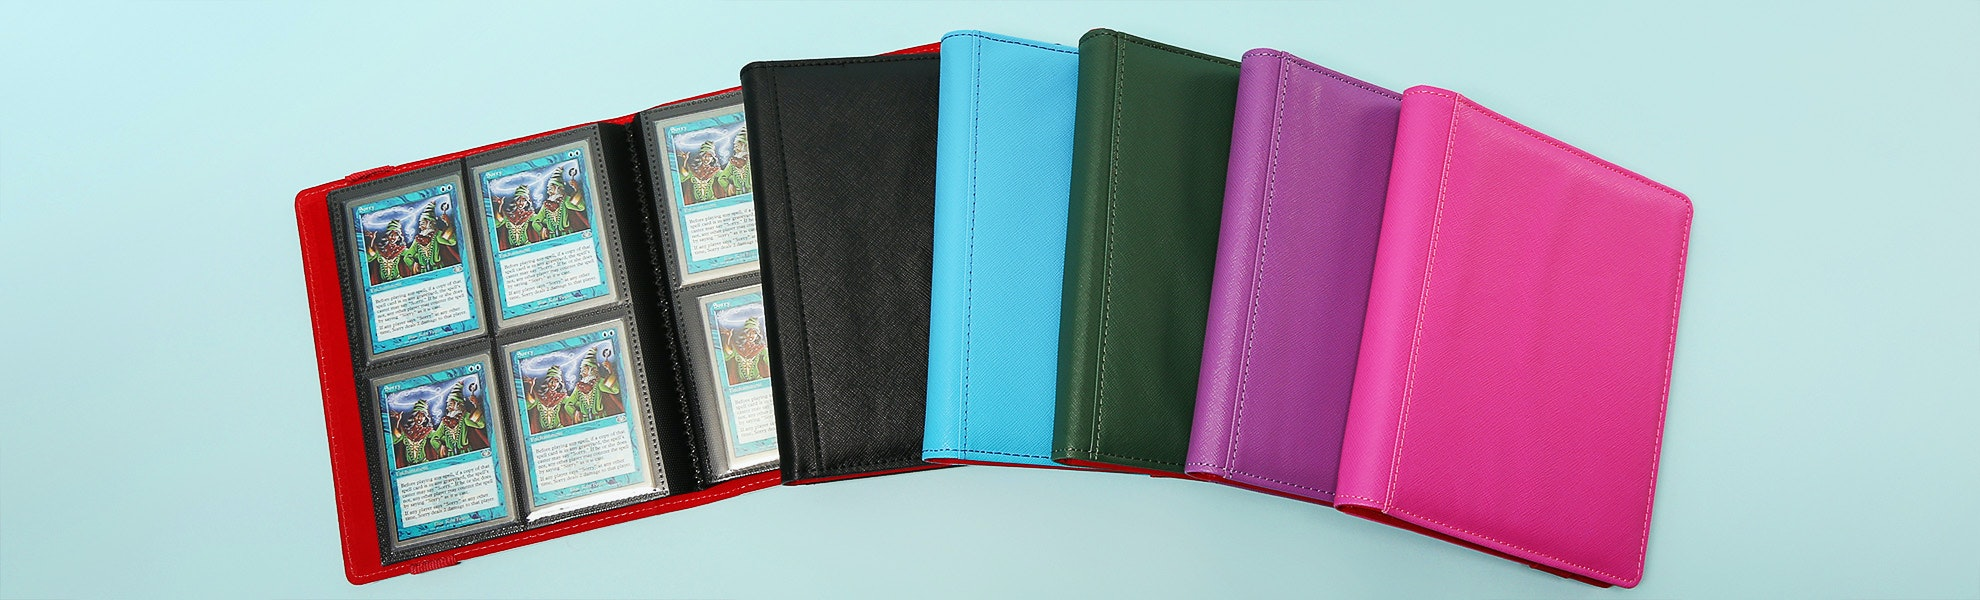 DEX Protection Four-Pocket Binder (2-pack)